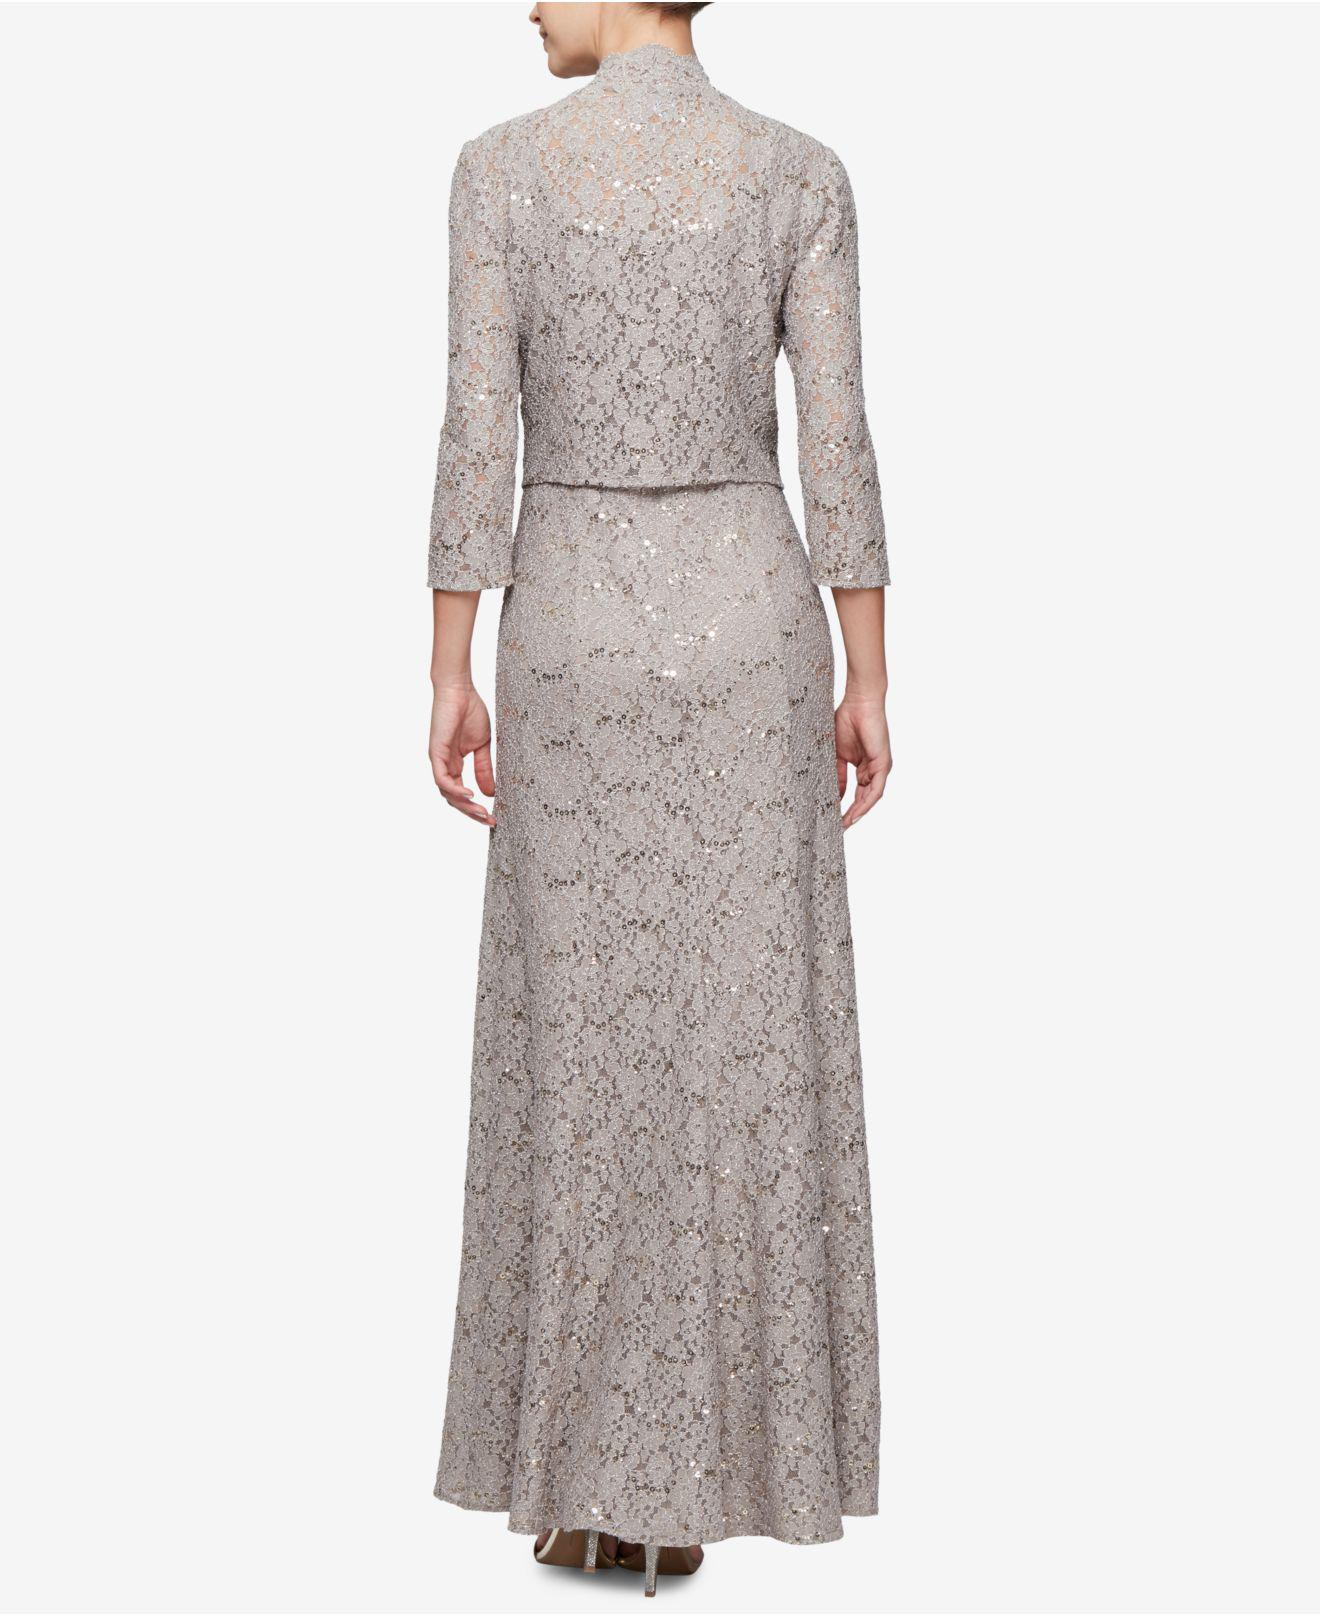 3aa473445a Lyst - Alex Evenings Sequined Lace Gown   Jacket